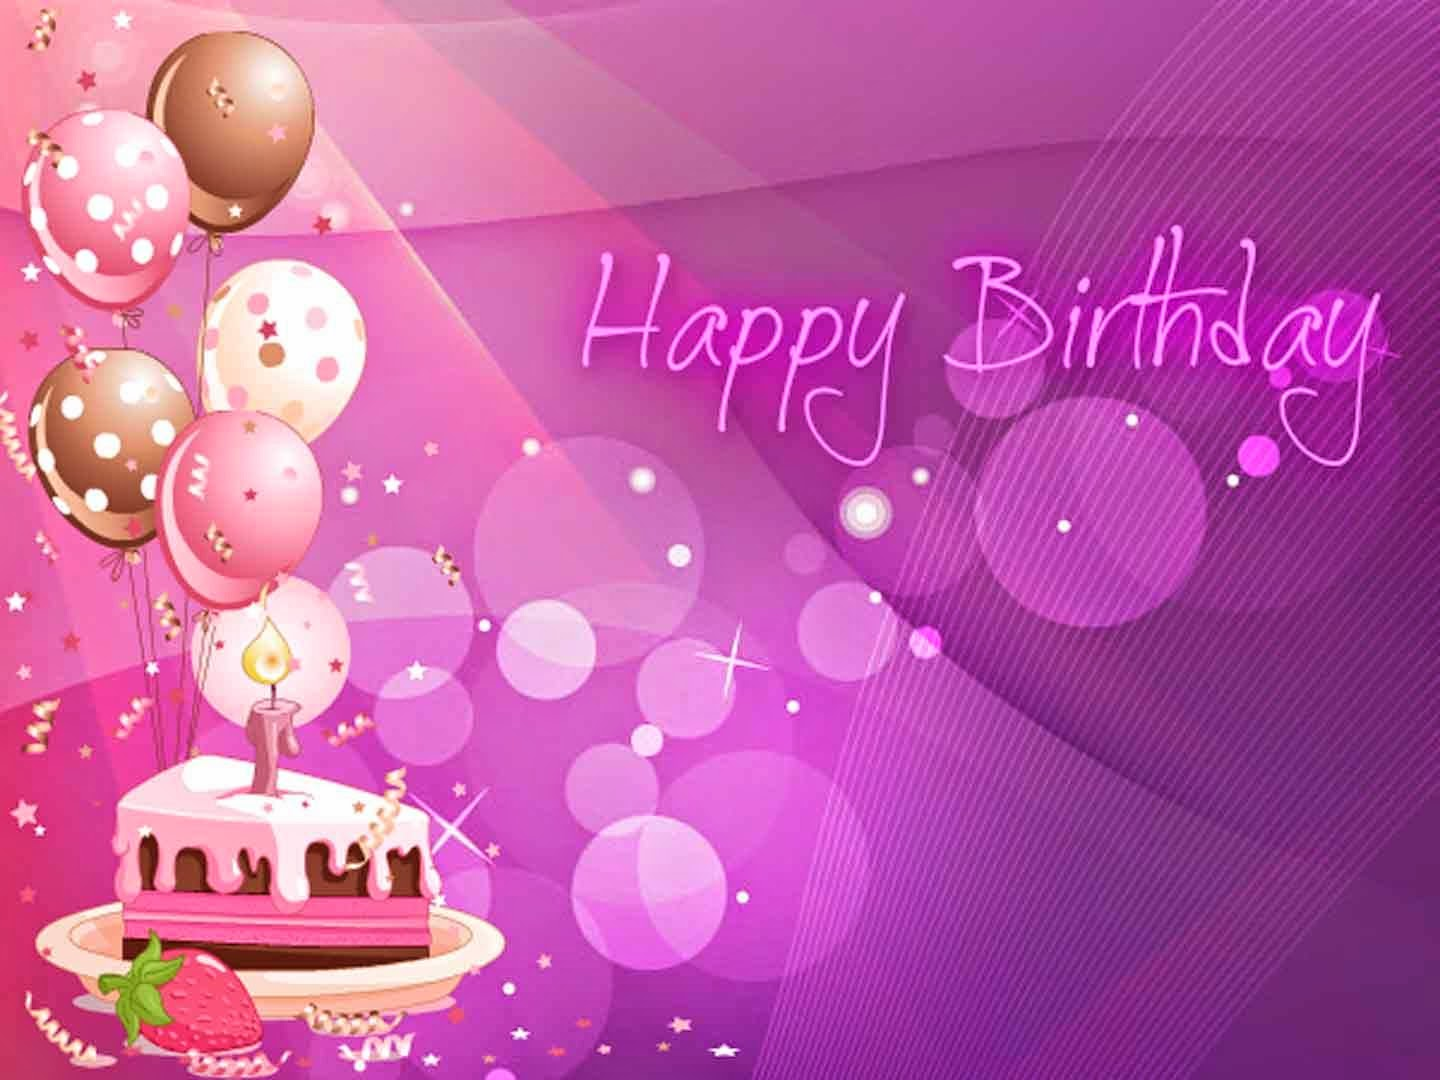 Happy Birthday Wallpapers | Download Free High Definition ...